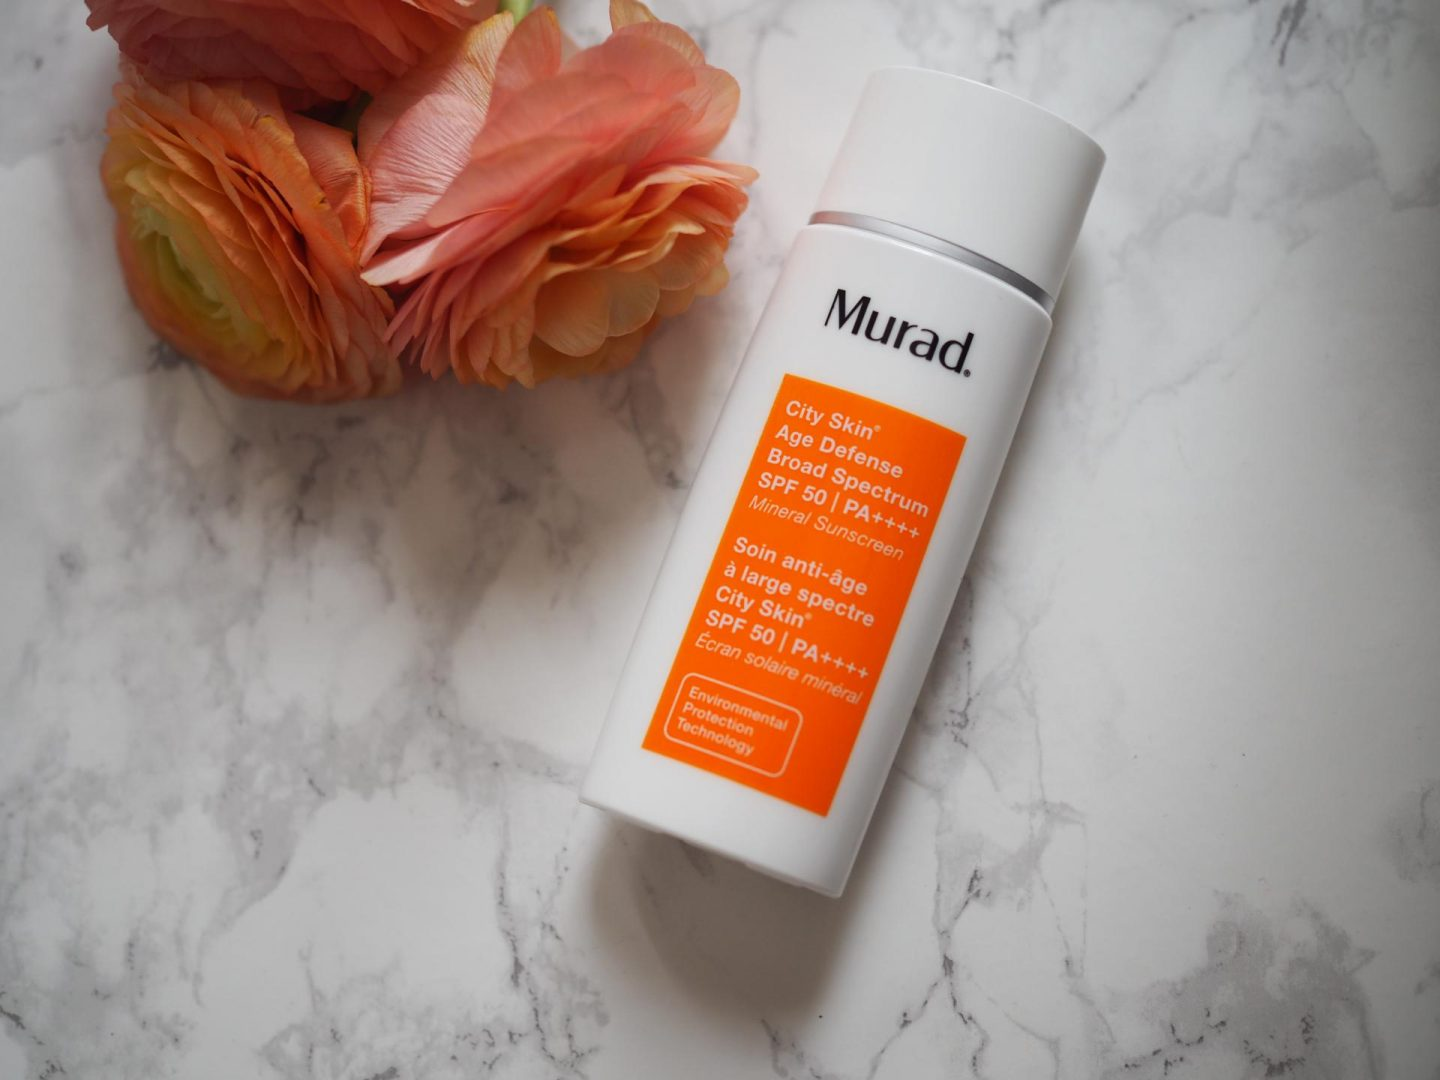 Murad City Skin Age Defense Broad Spectrum SPF 50